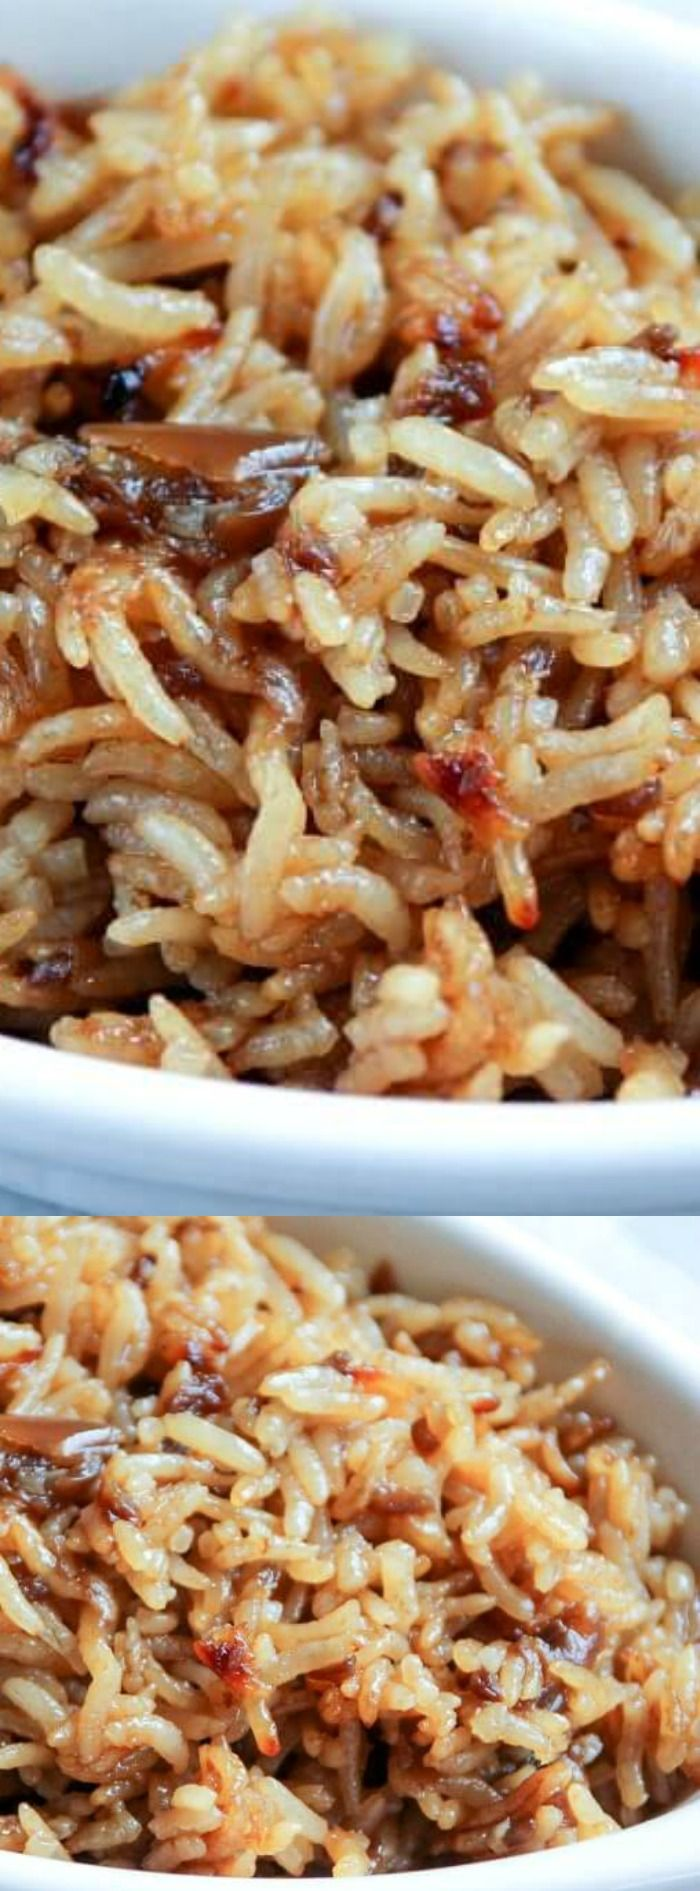 This Stick of Butter Rice recipe from Amanda over at The Chunky Chef will become one of your new favorite side dish recipes for sure! It only has 4 ingredients — yes… only FOUR and it tastes amazing when it's done.